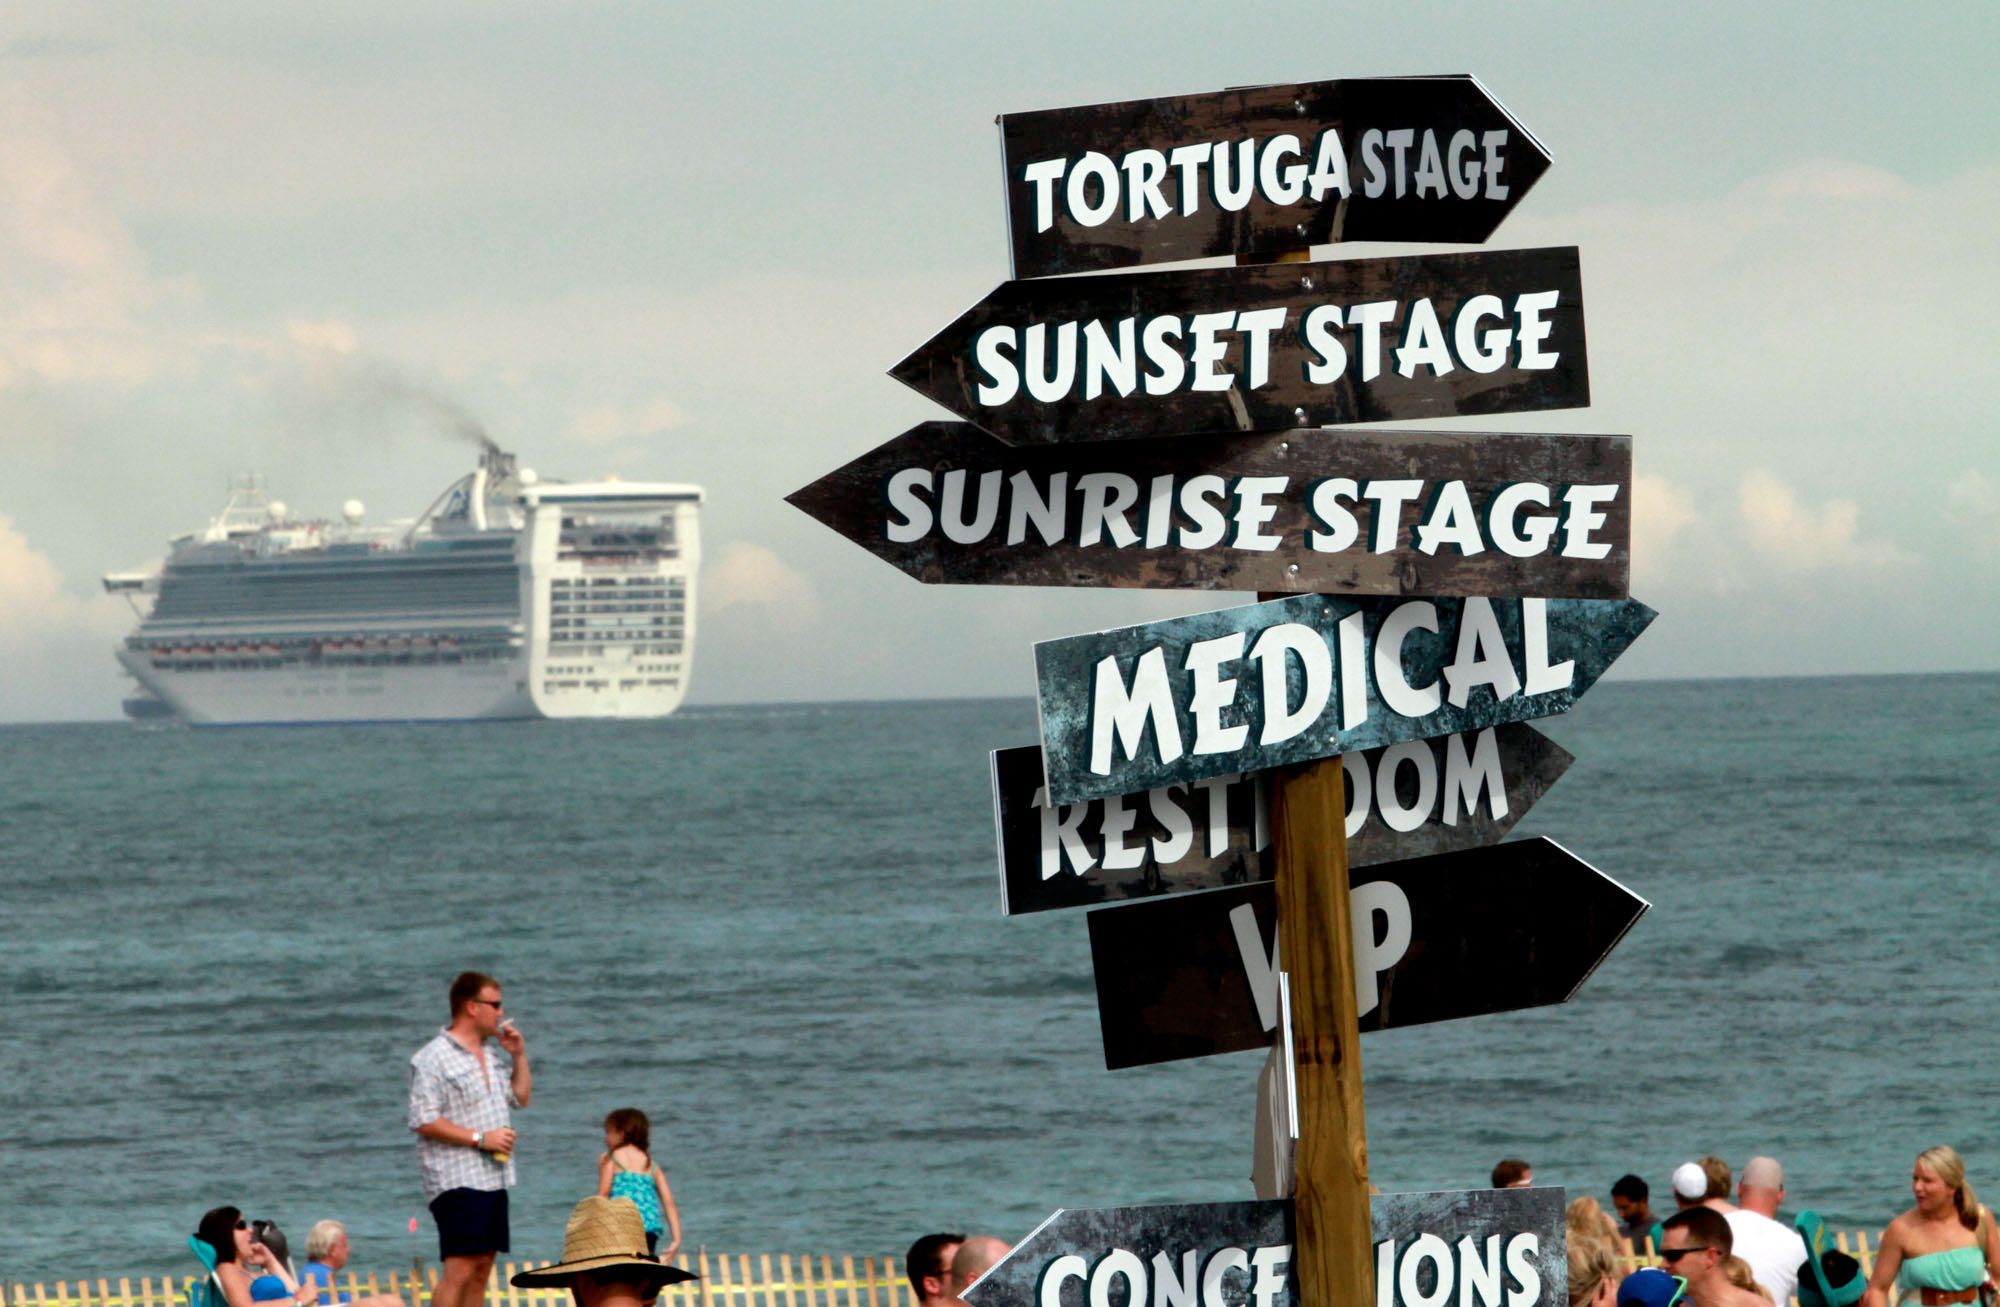 PHOTOS: 2013 Tortuga Music Festival - Navigating Tortuga